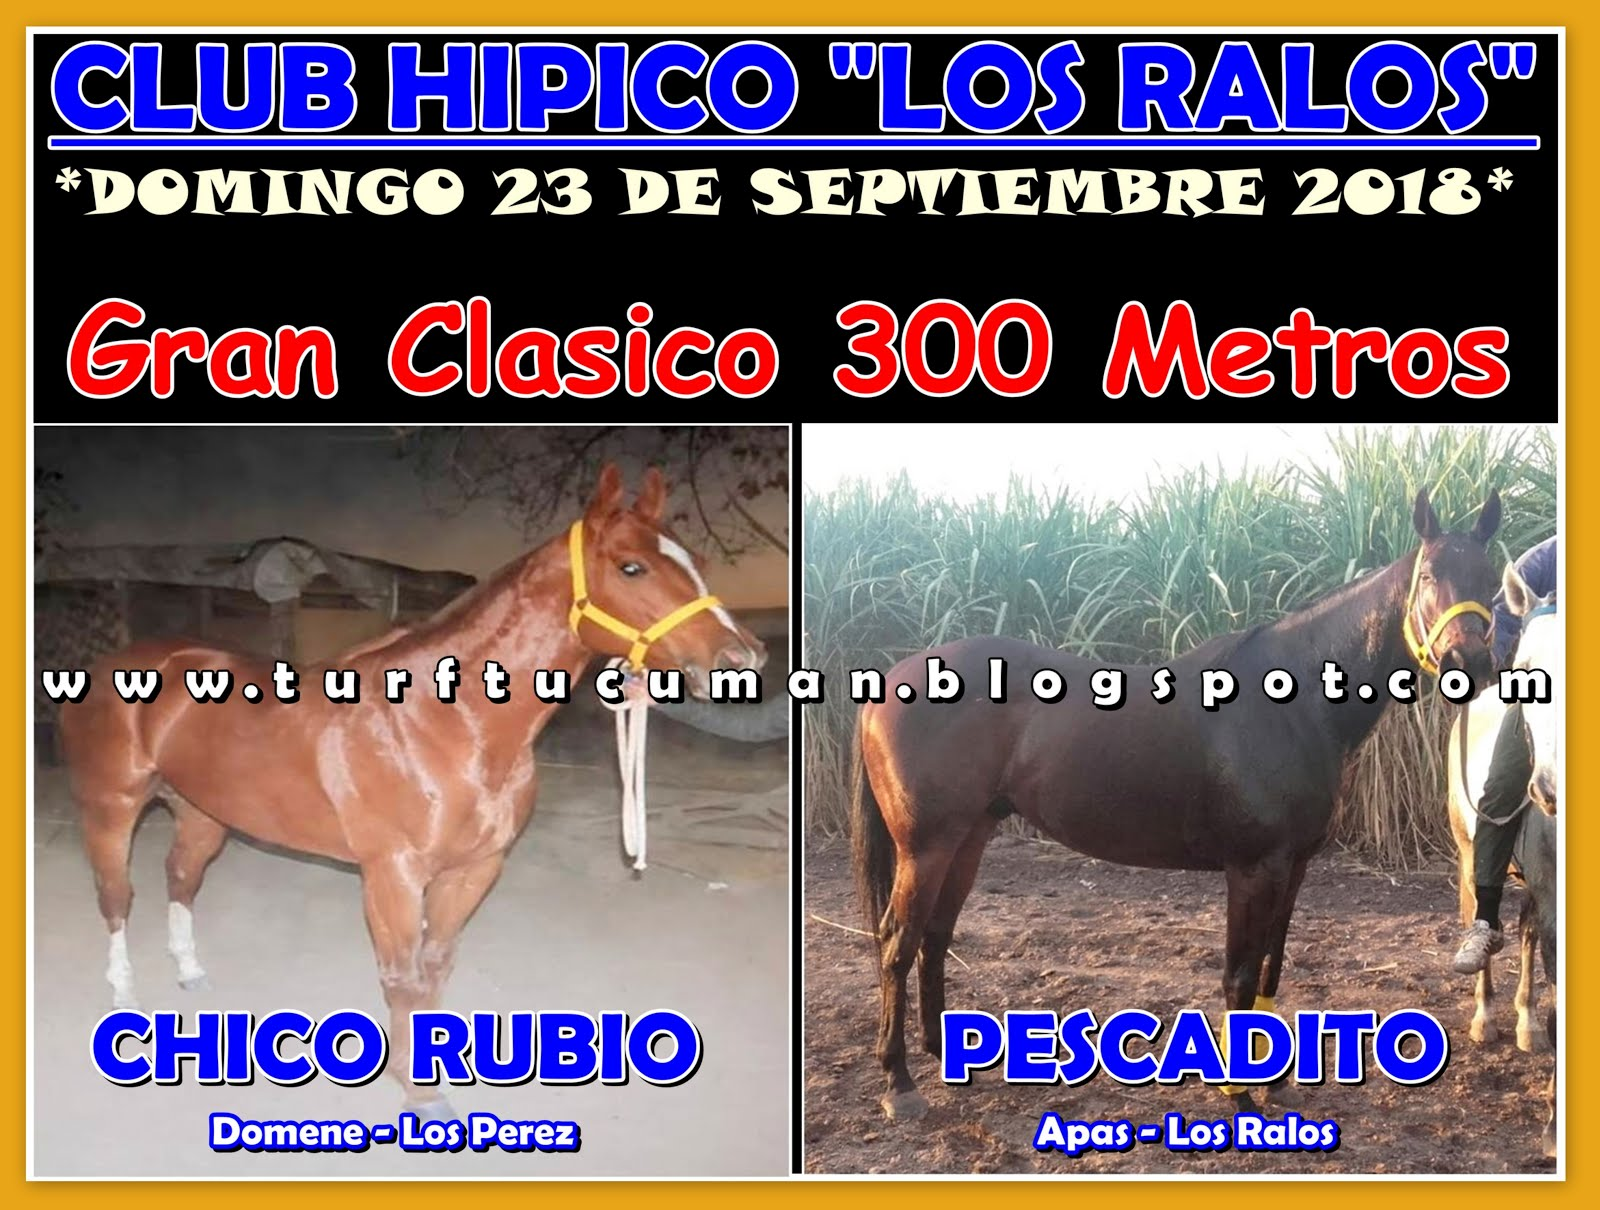 CHICO RUBIO VS PESCADITO